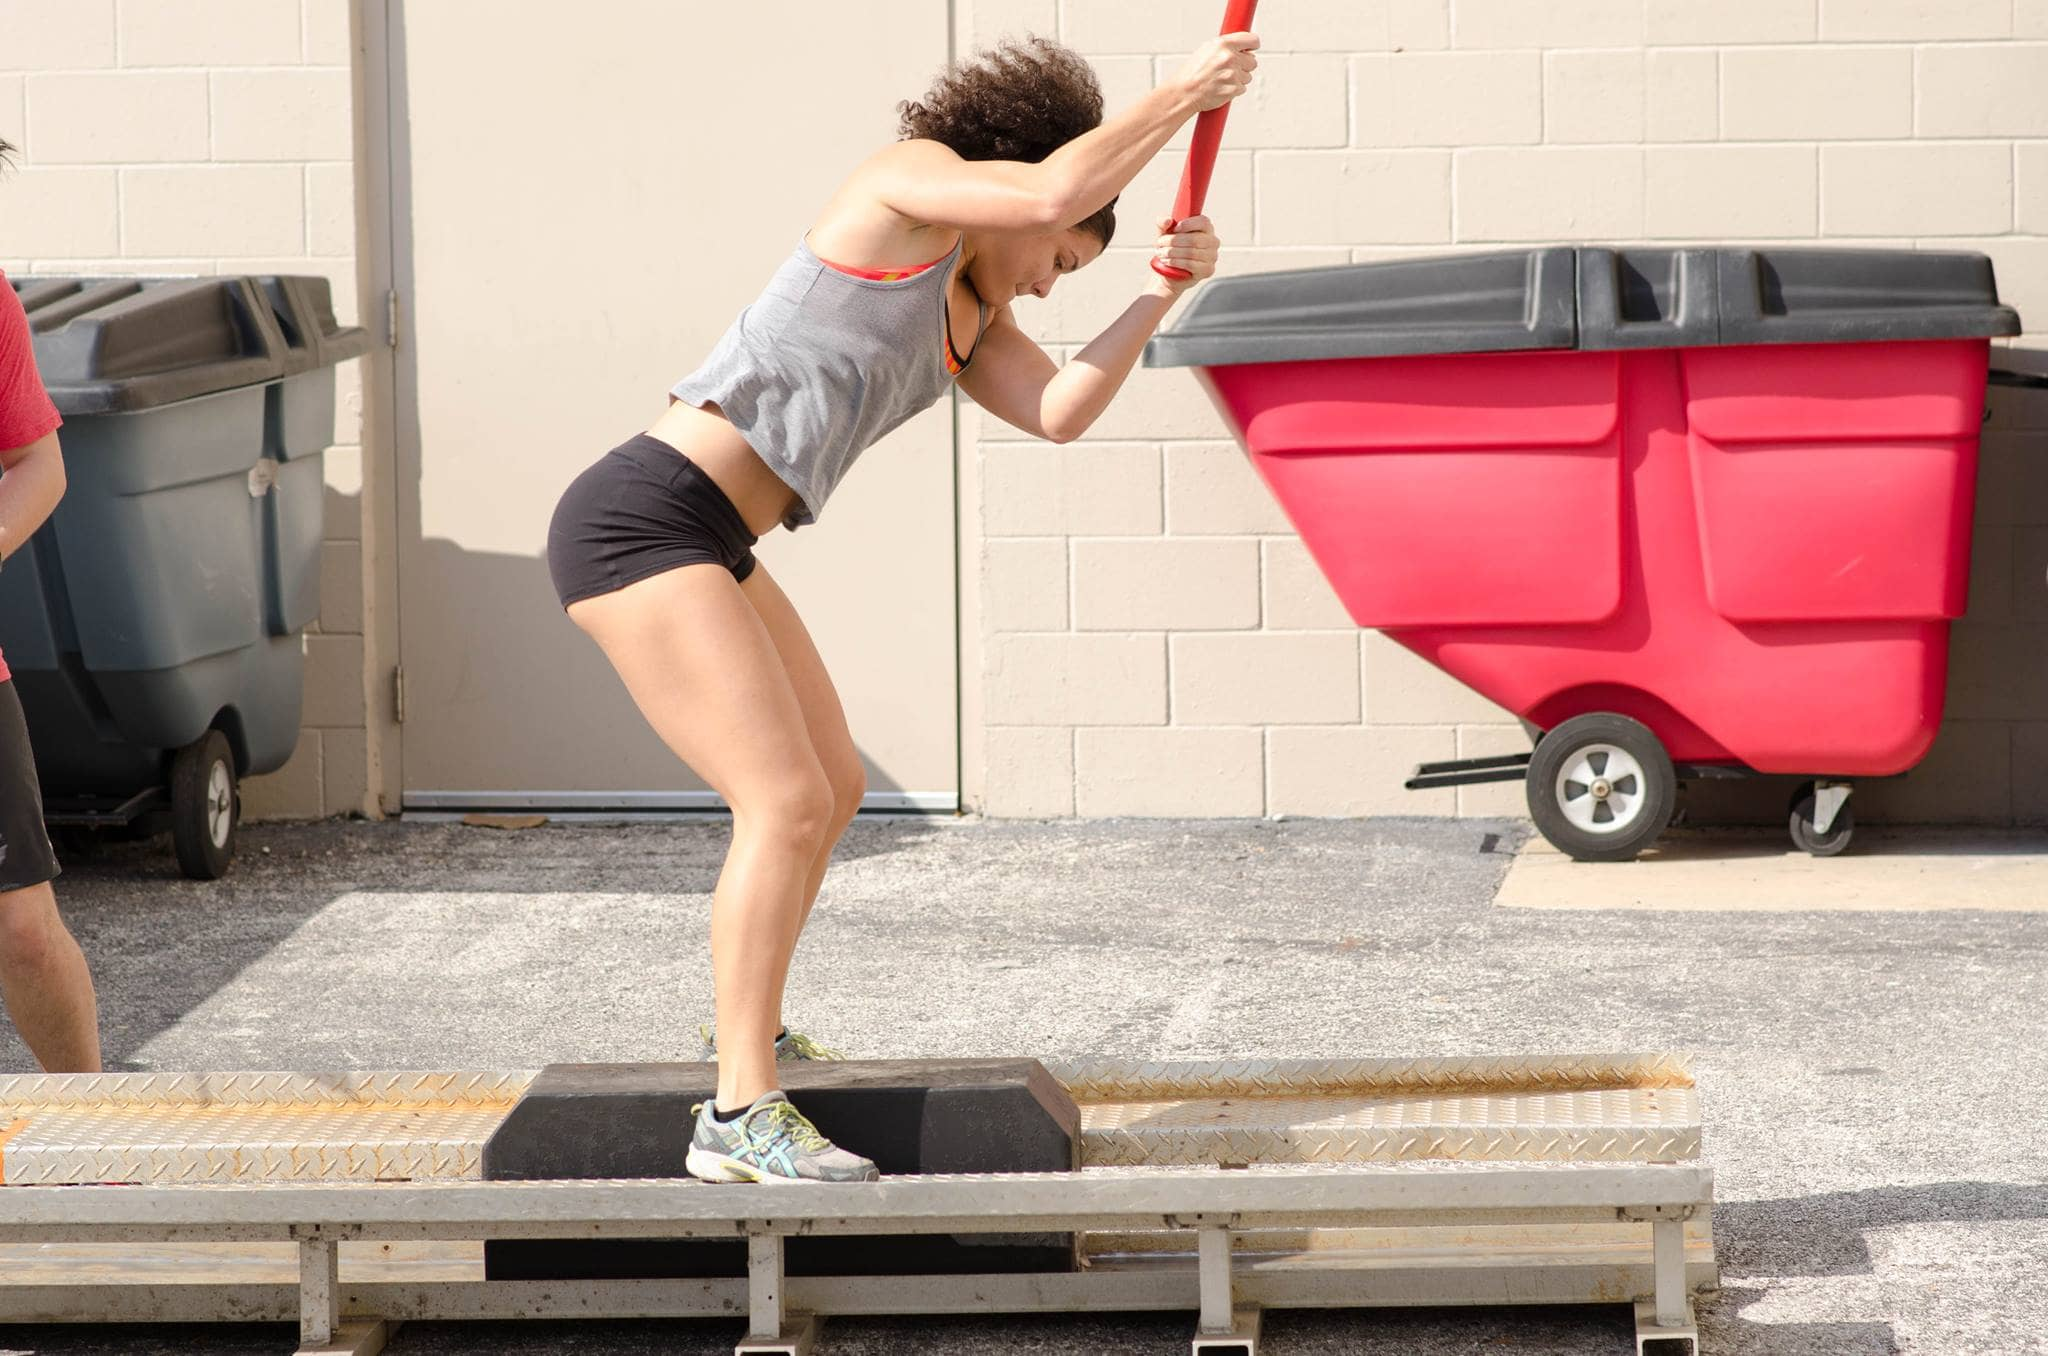 Ashley Forde crossfit riverview tampa bay and brandon